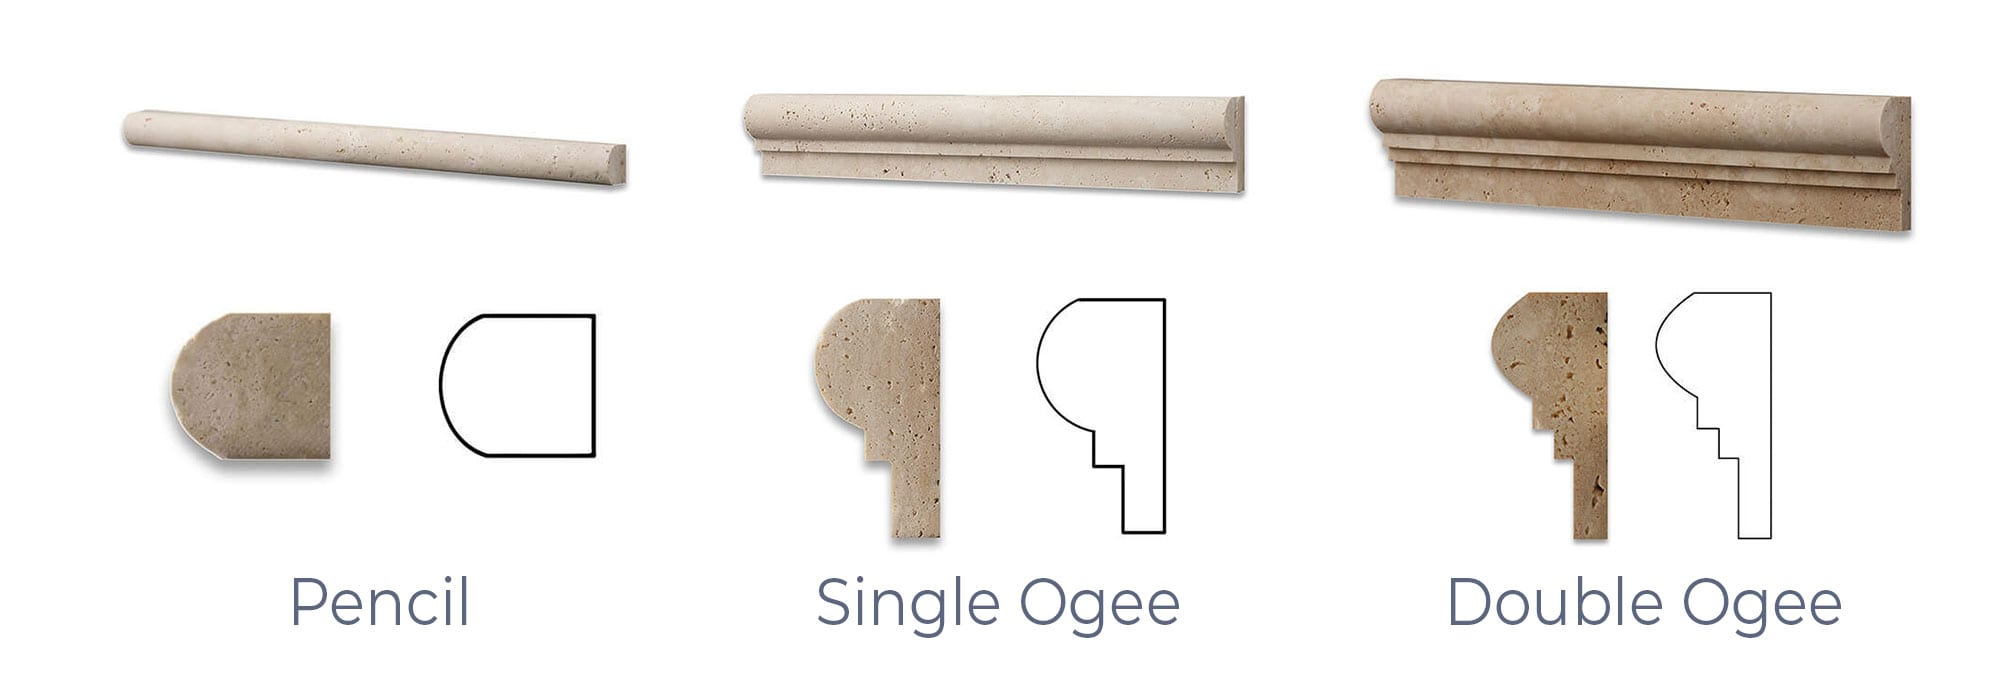 Stoneline-Group-Ivory-Marble-Collection-Marble-Mosaic-Pencil-Sinlgle-Double-Ogee